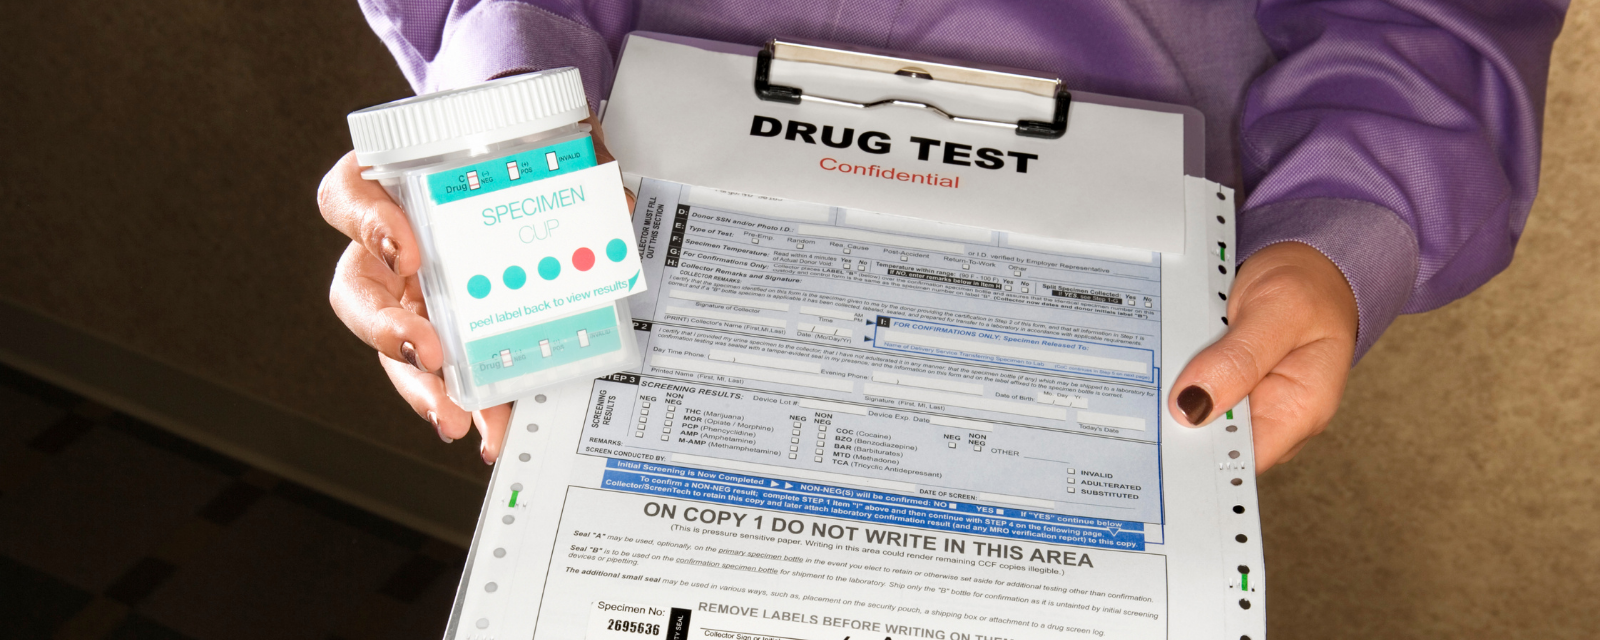 woman holding clipboard with drug test form and cup labeled specimen cup